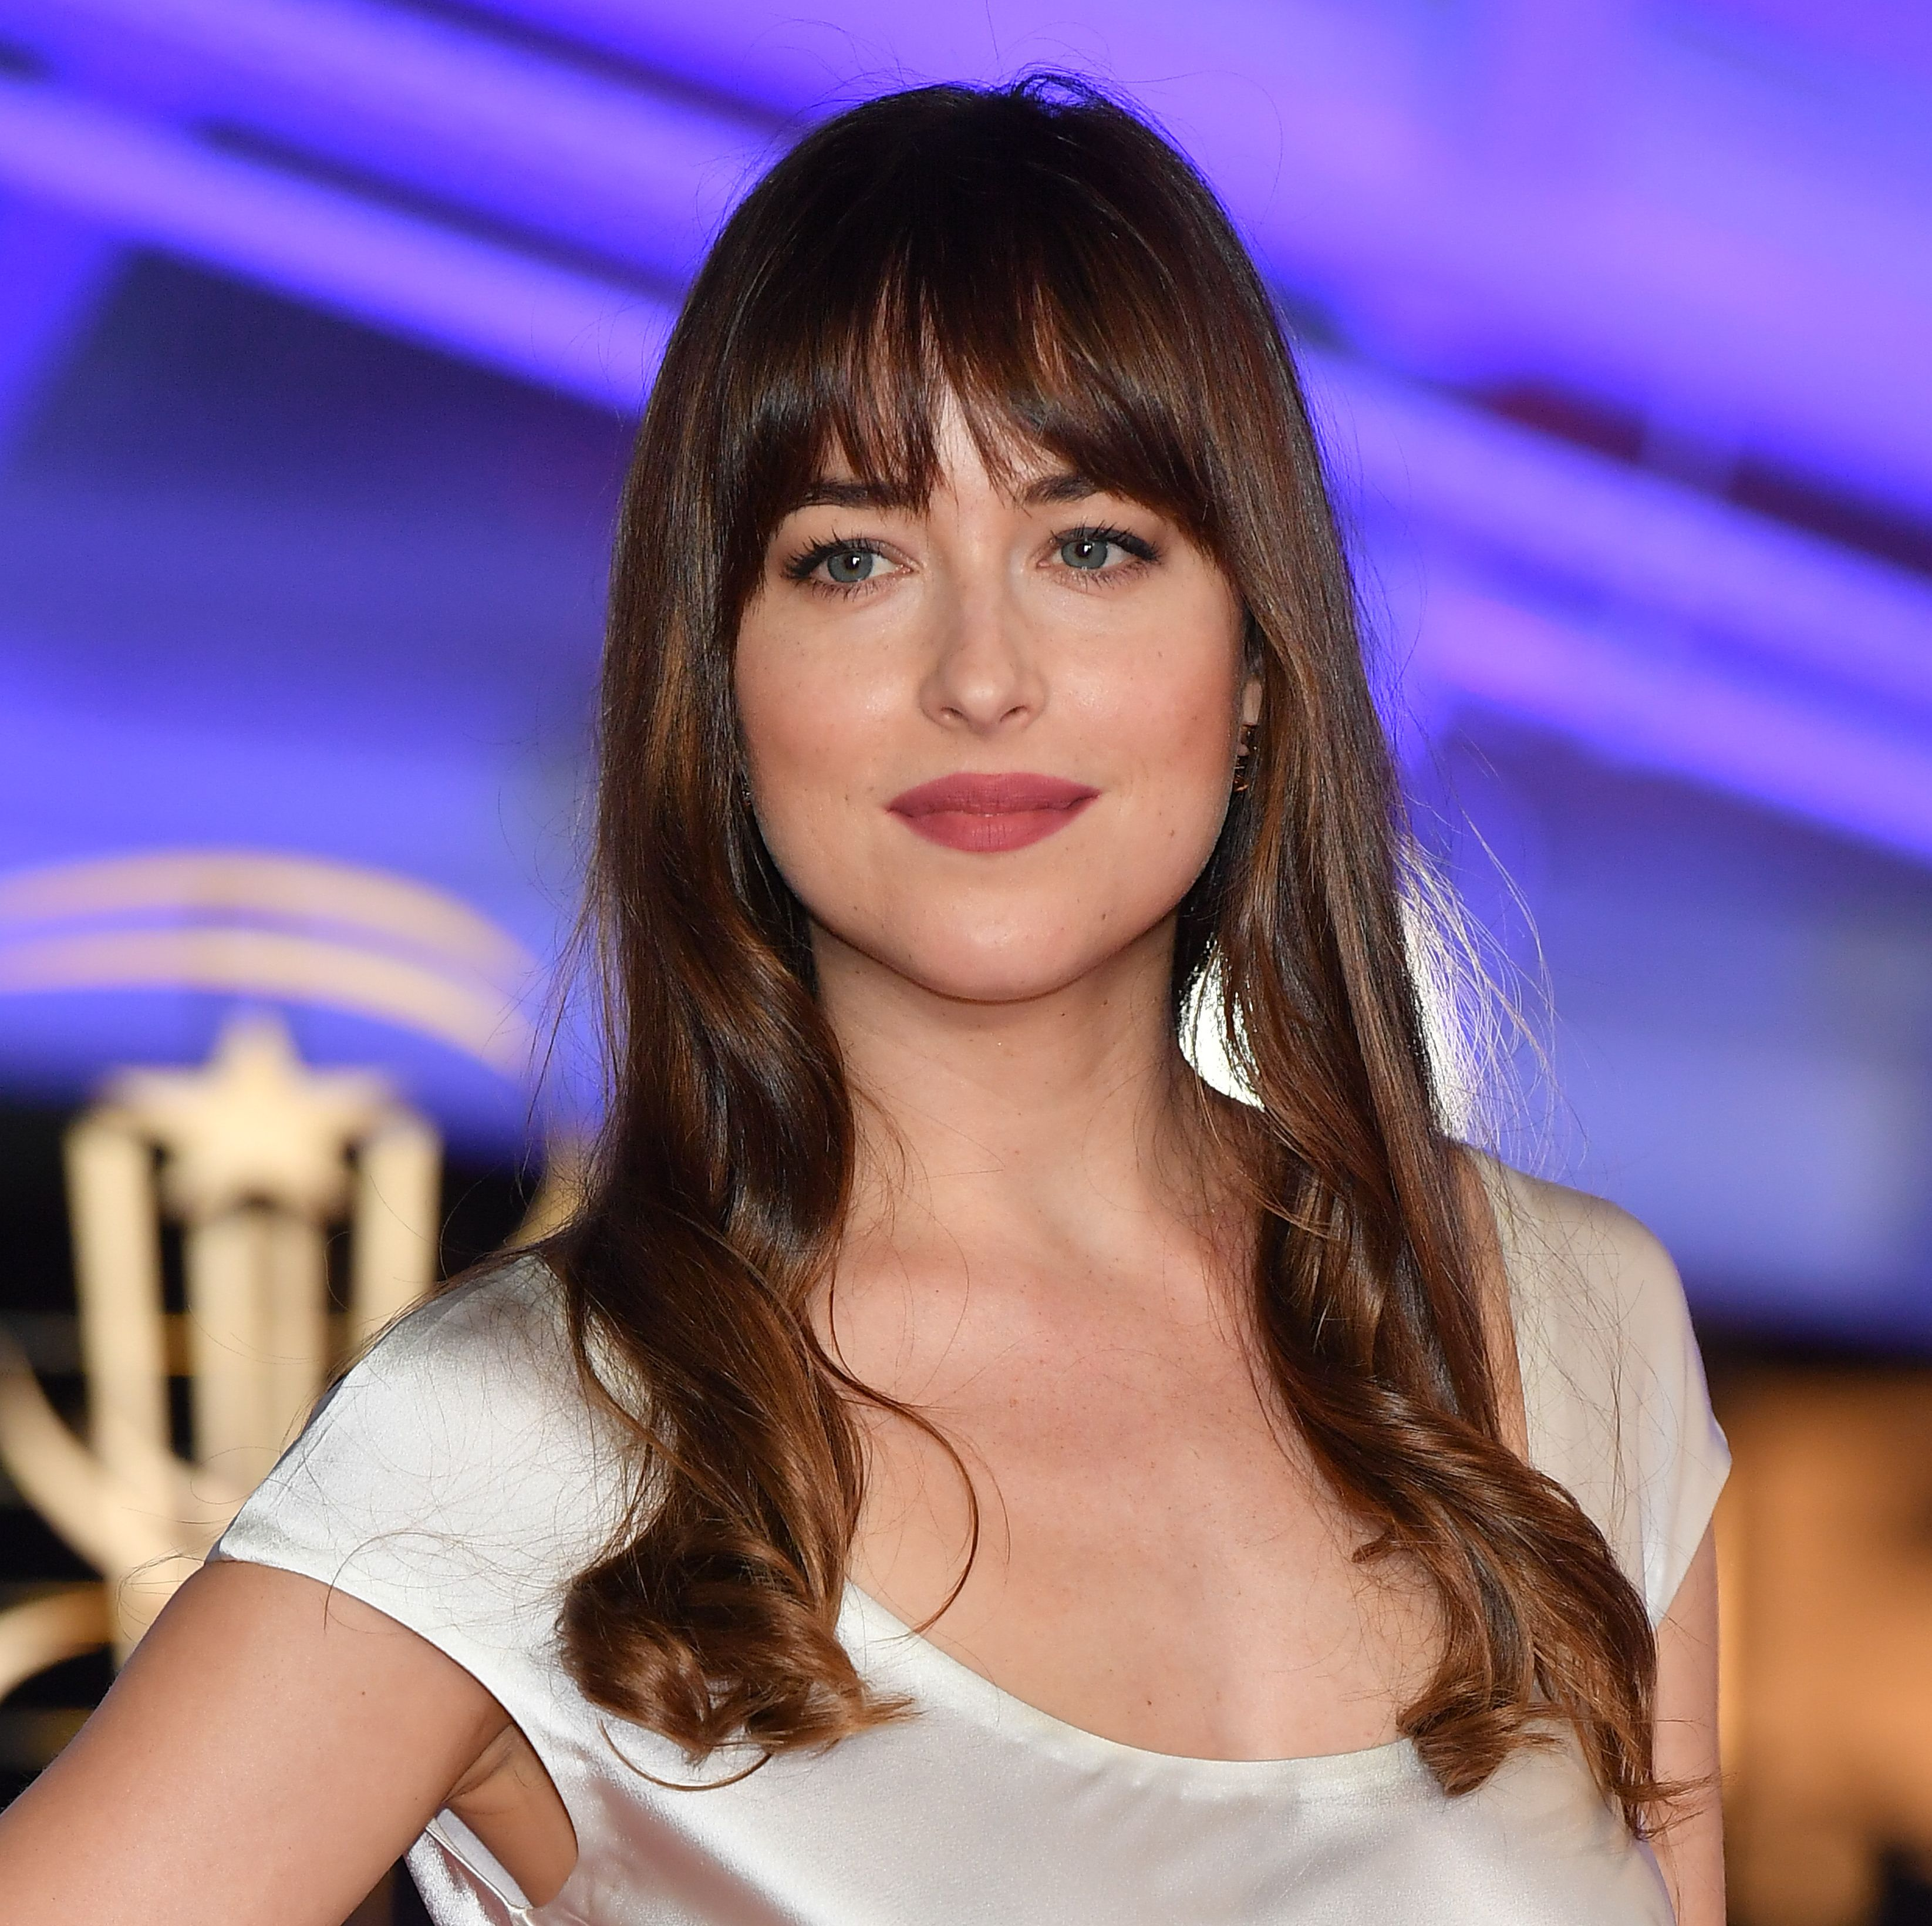 Dakota Johnson Says 'Traumatic' Periods Are 'Ruining Her Life'